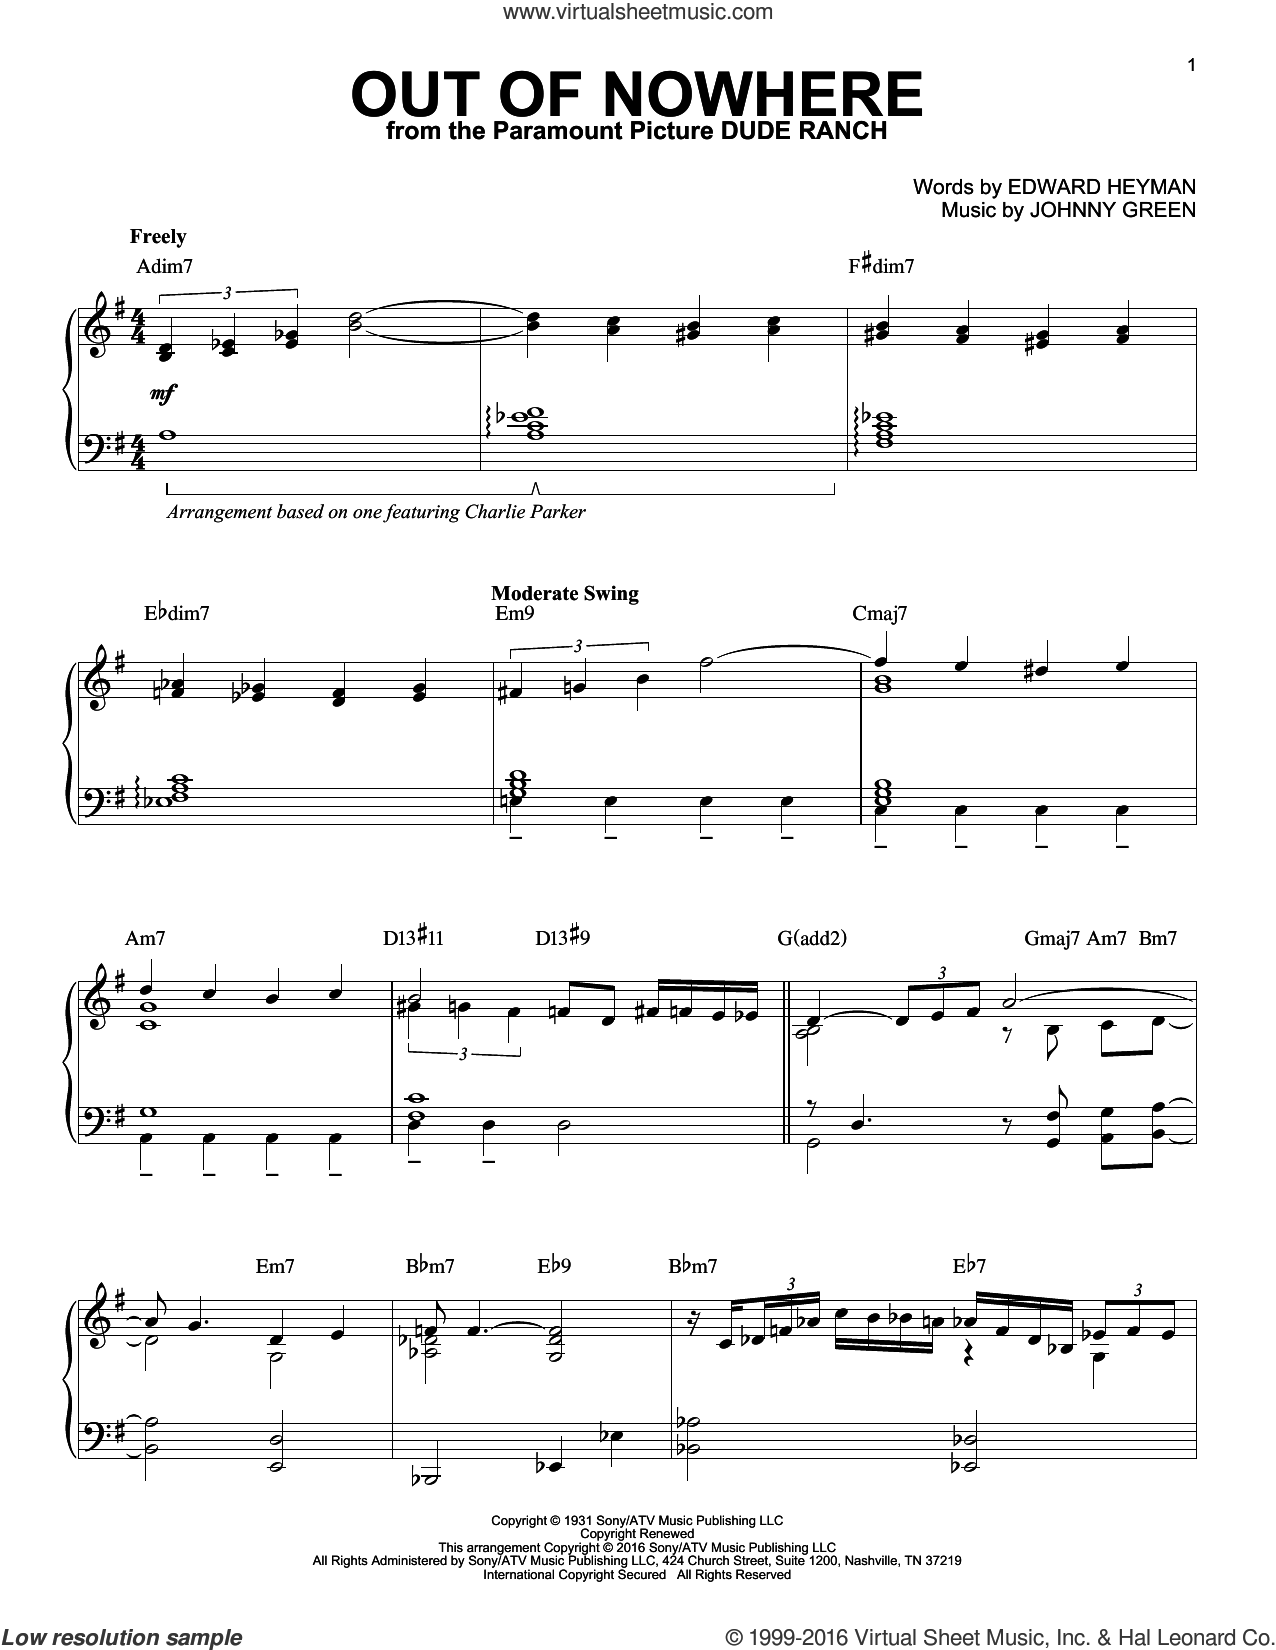 Out Of Nowhere sheet music for piano solo by Charlie Parker, Buddy DeFranco, Edward Heyman and Johnny Green, intermediate skill level